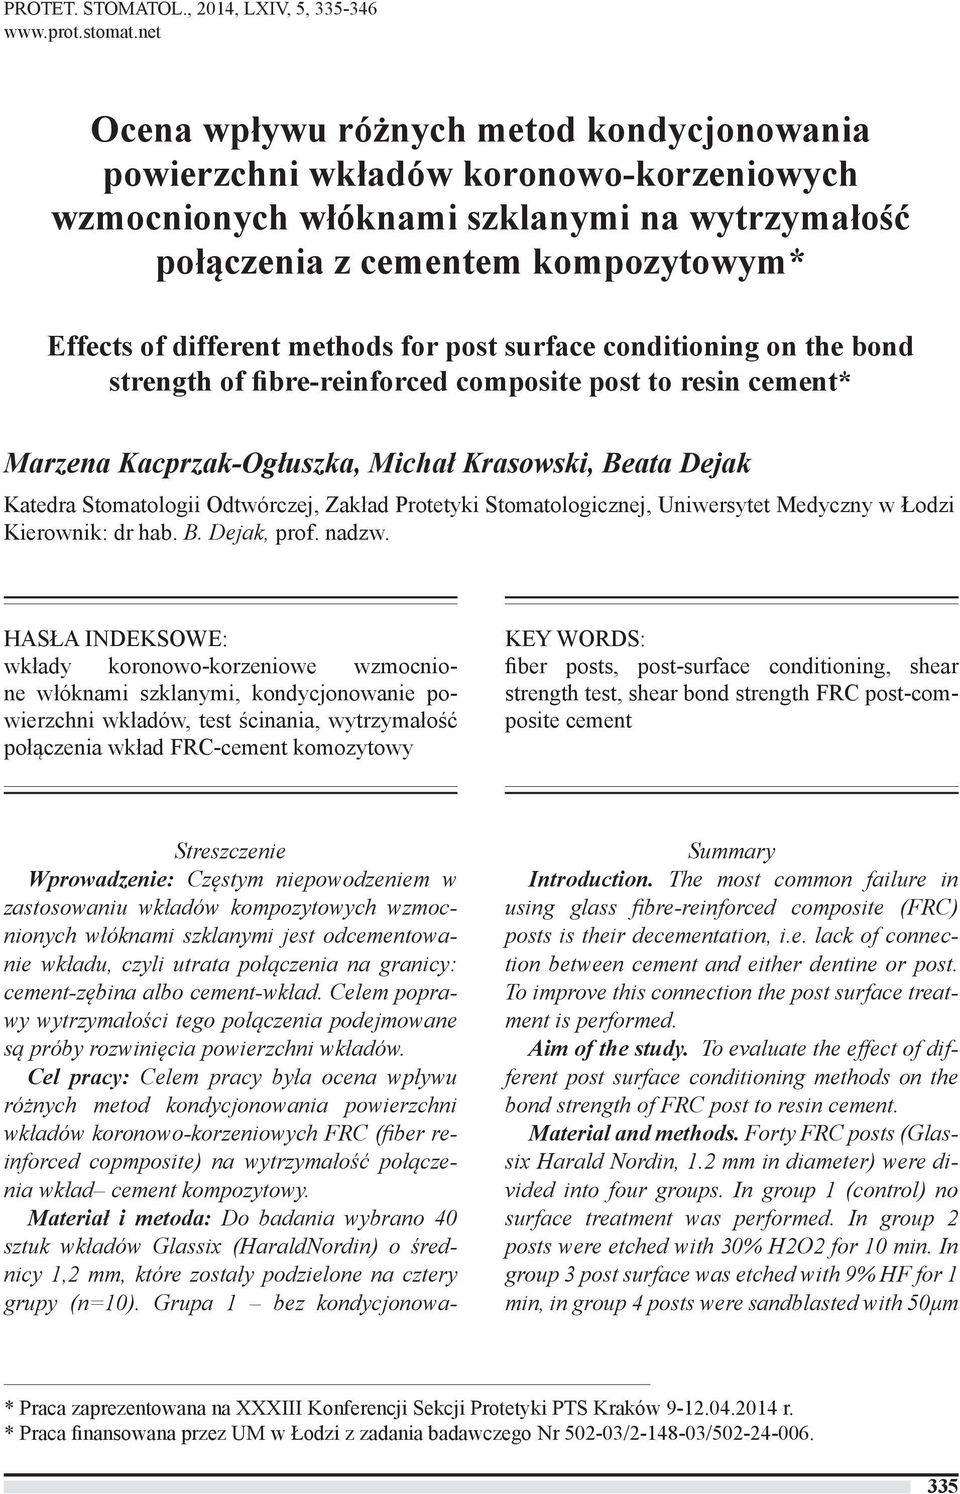 methods for post surface conditioning on the bond strength of fibre-reinforced composite post to resin cement* Marzena Kacprzak-Ogłuszka, Michał Krasowski, Beata Dejak Katedra Stomatologii